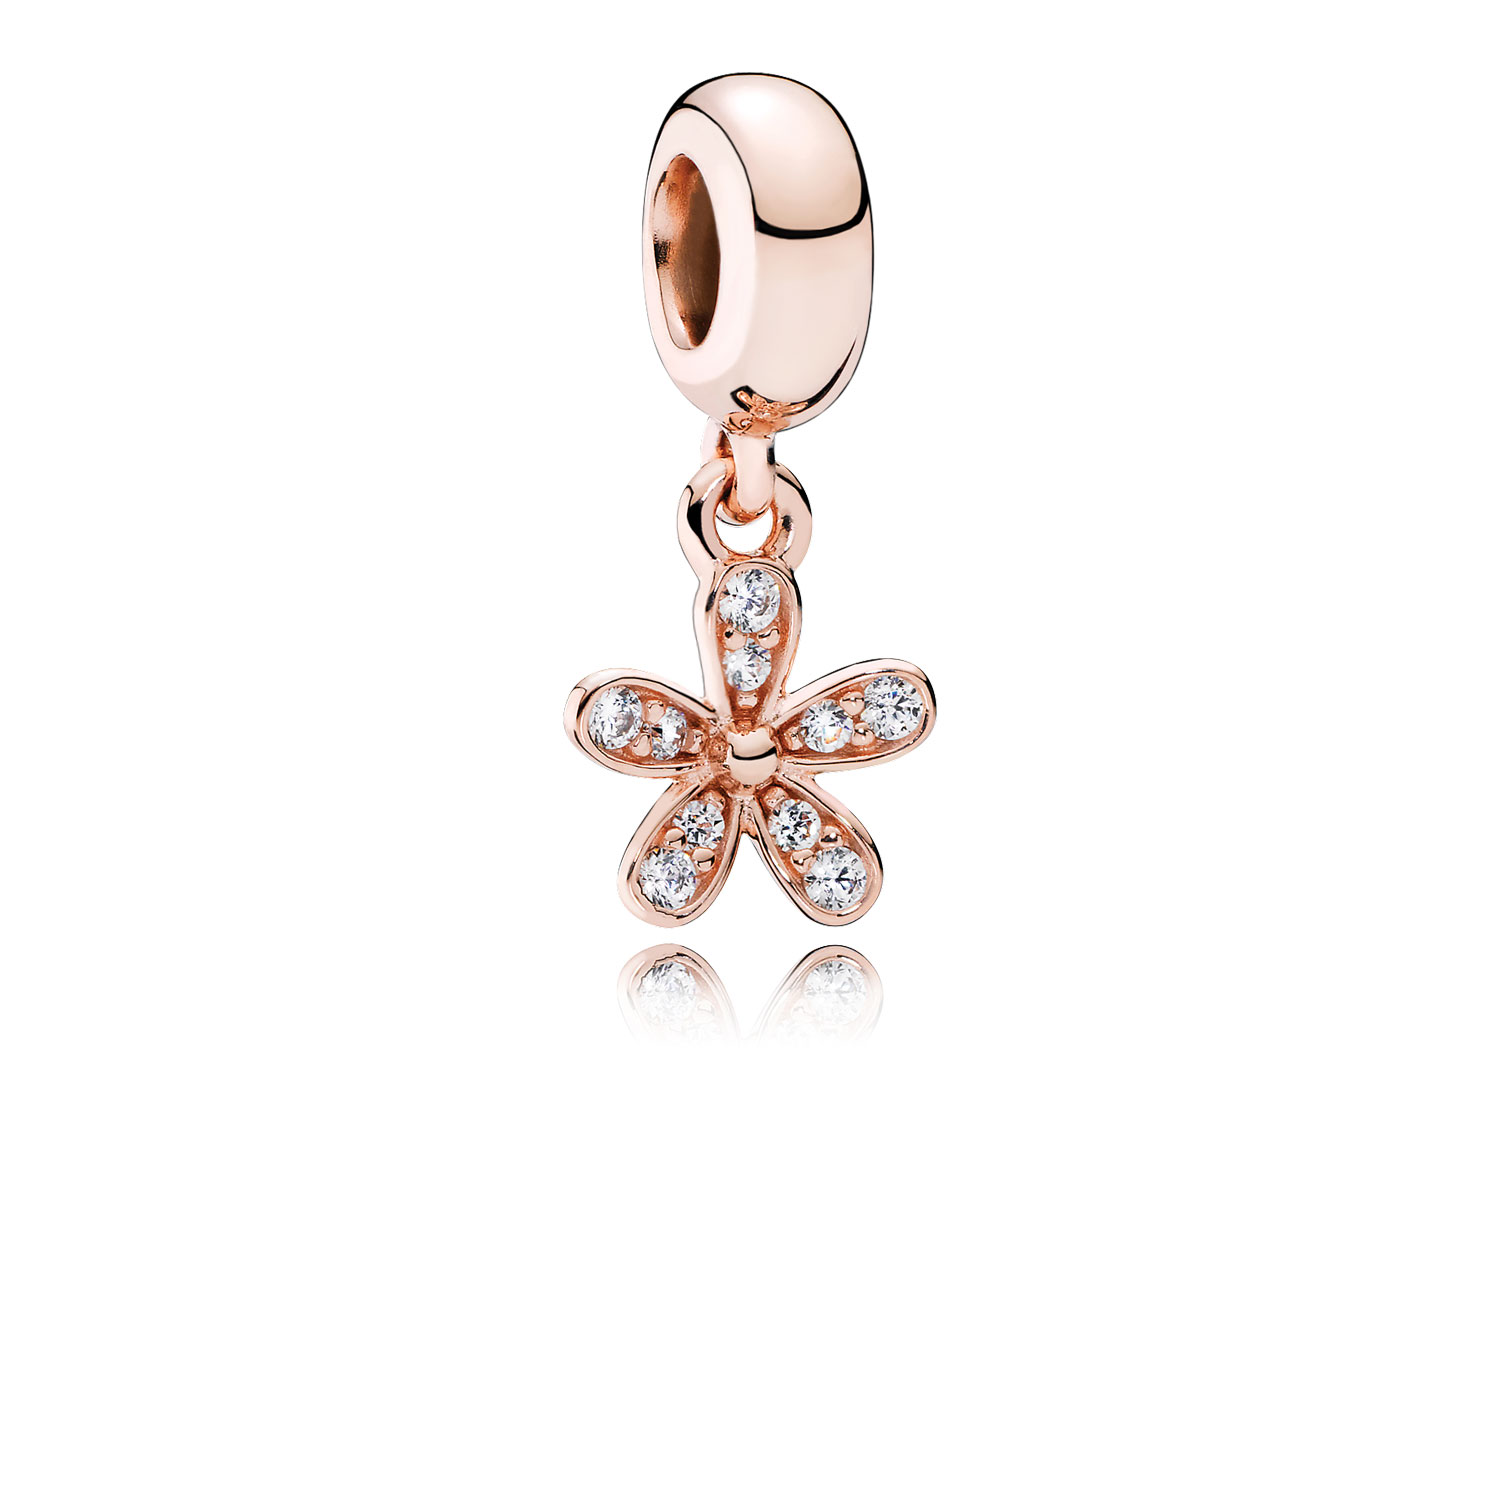 Dazzling Daisy Dangle Charm, PANDORA Rose™ & Clear CZ